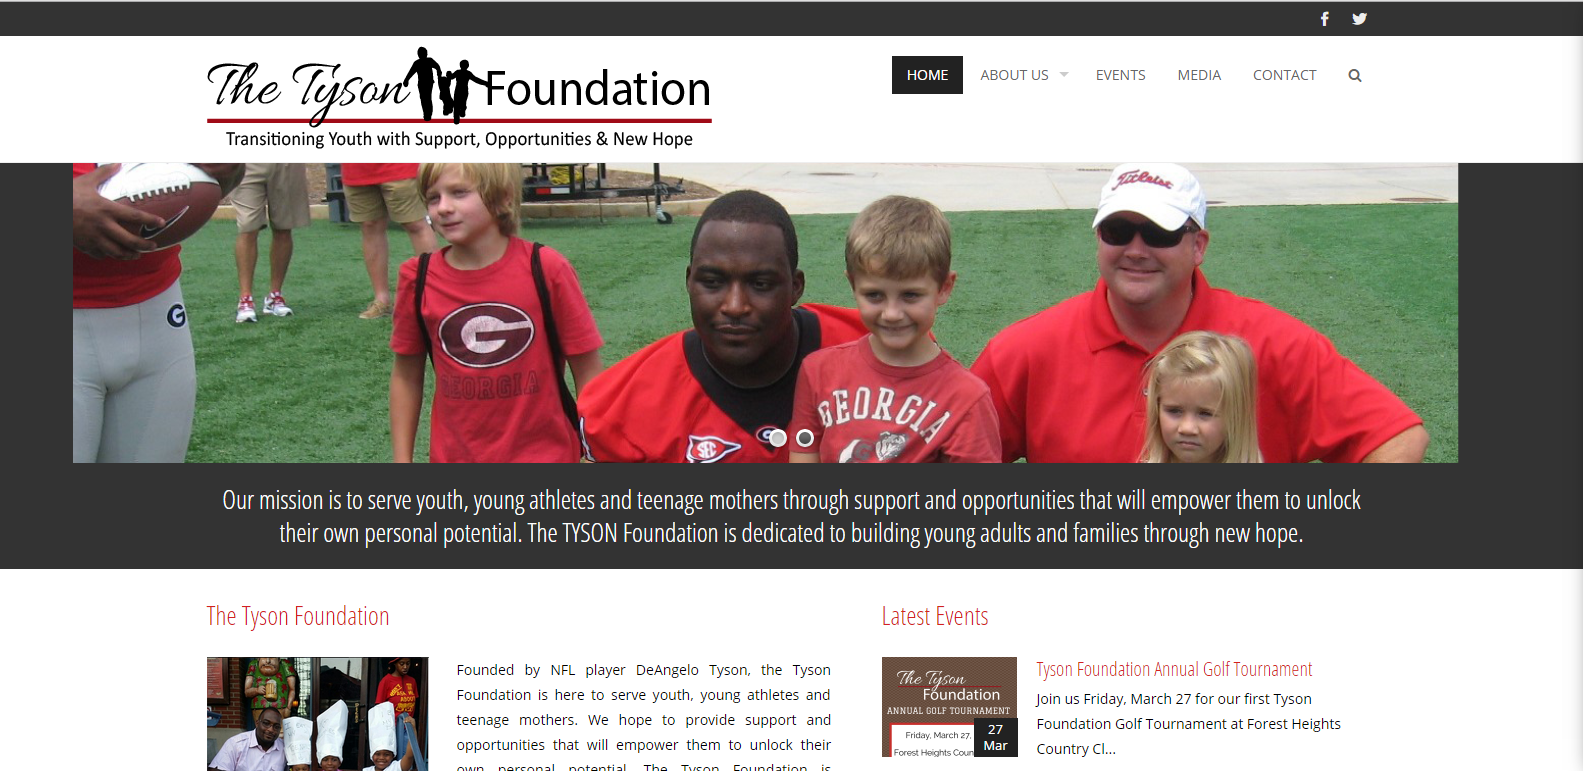 The Tyson Foundation